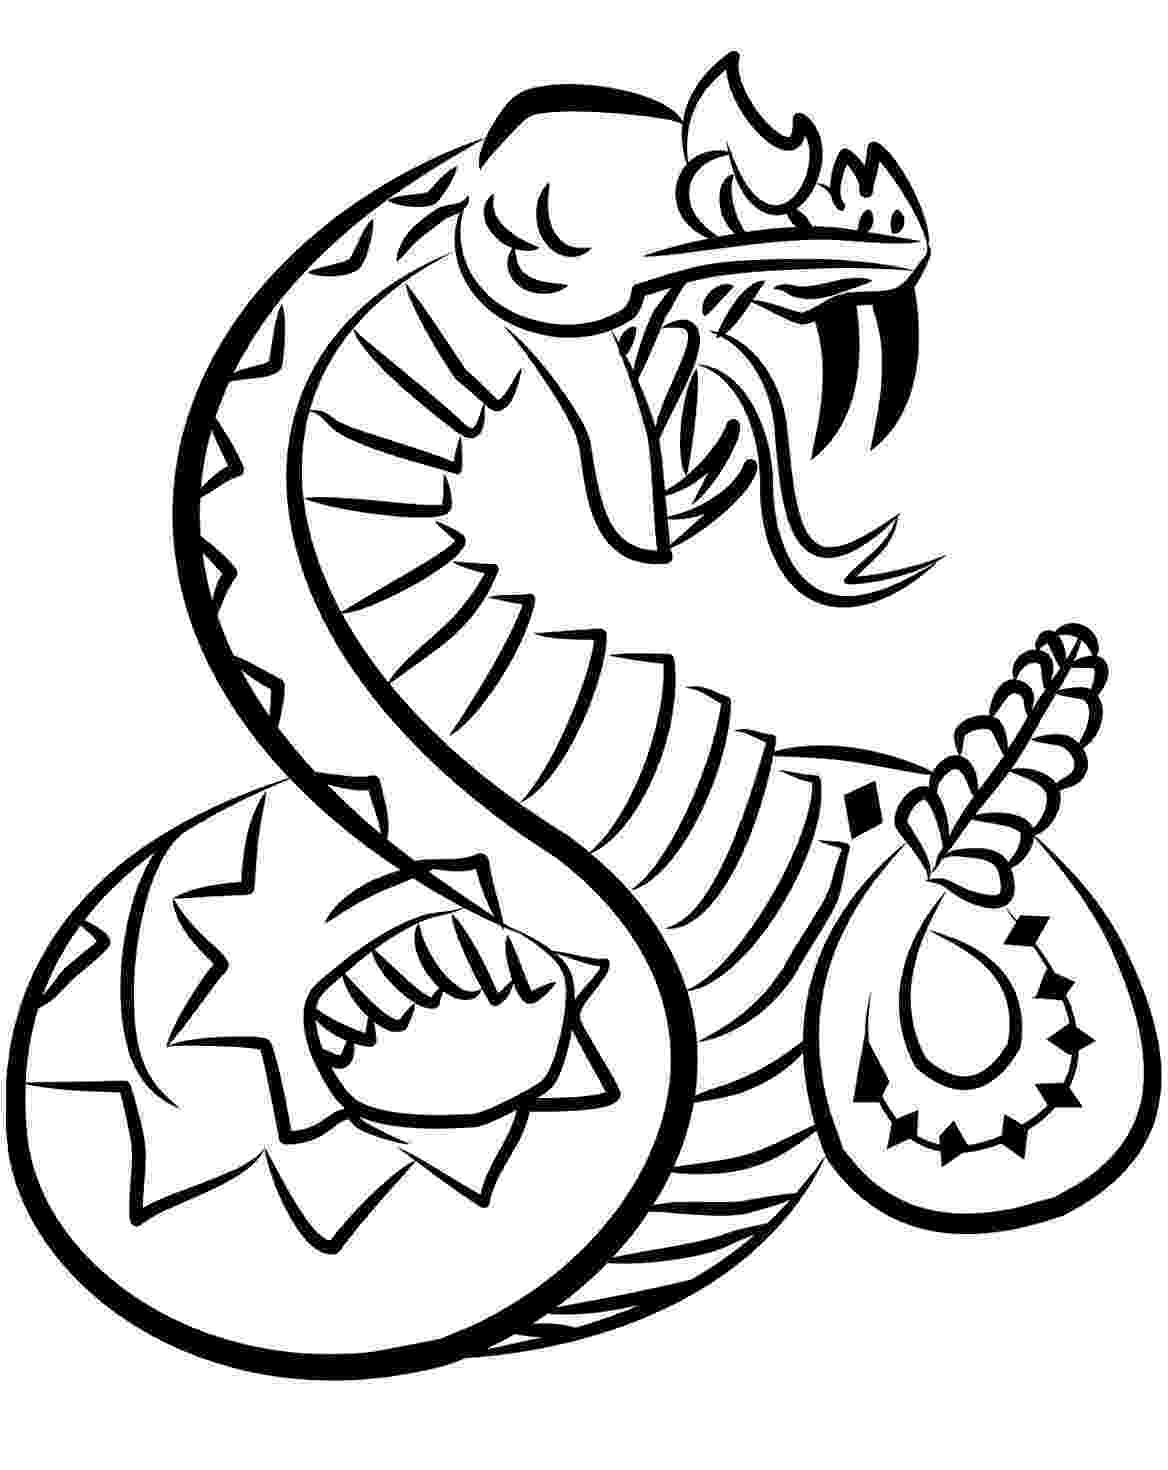 rattlesnake coloring pages coloring pages snakes coloring pages free and printable coloring rattlesnake pages